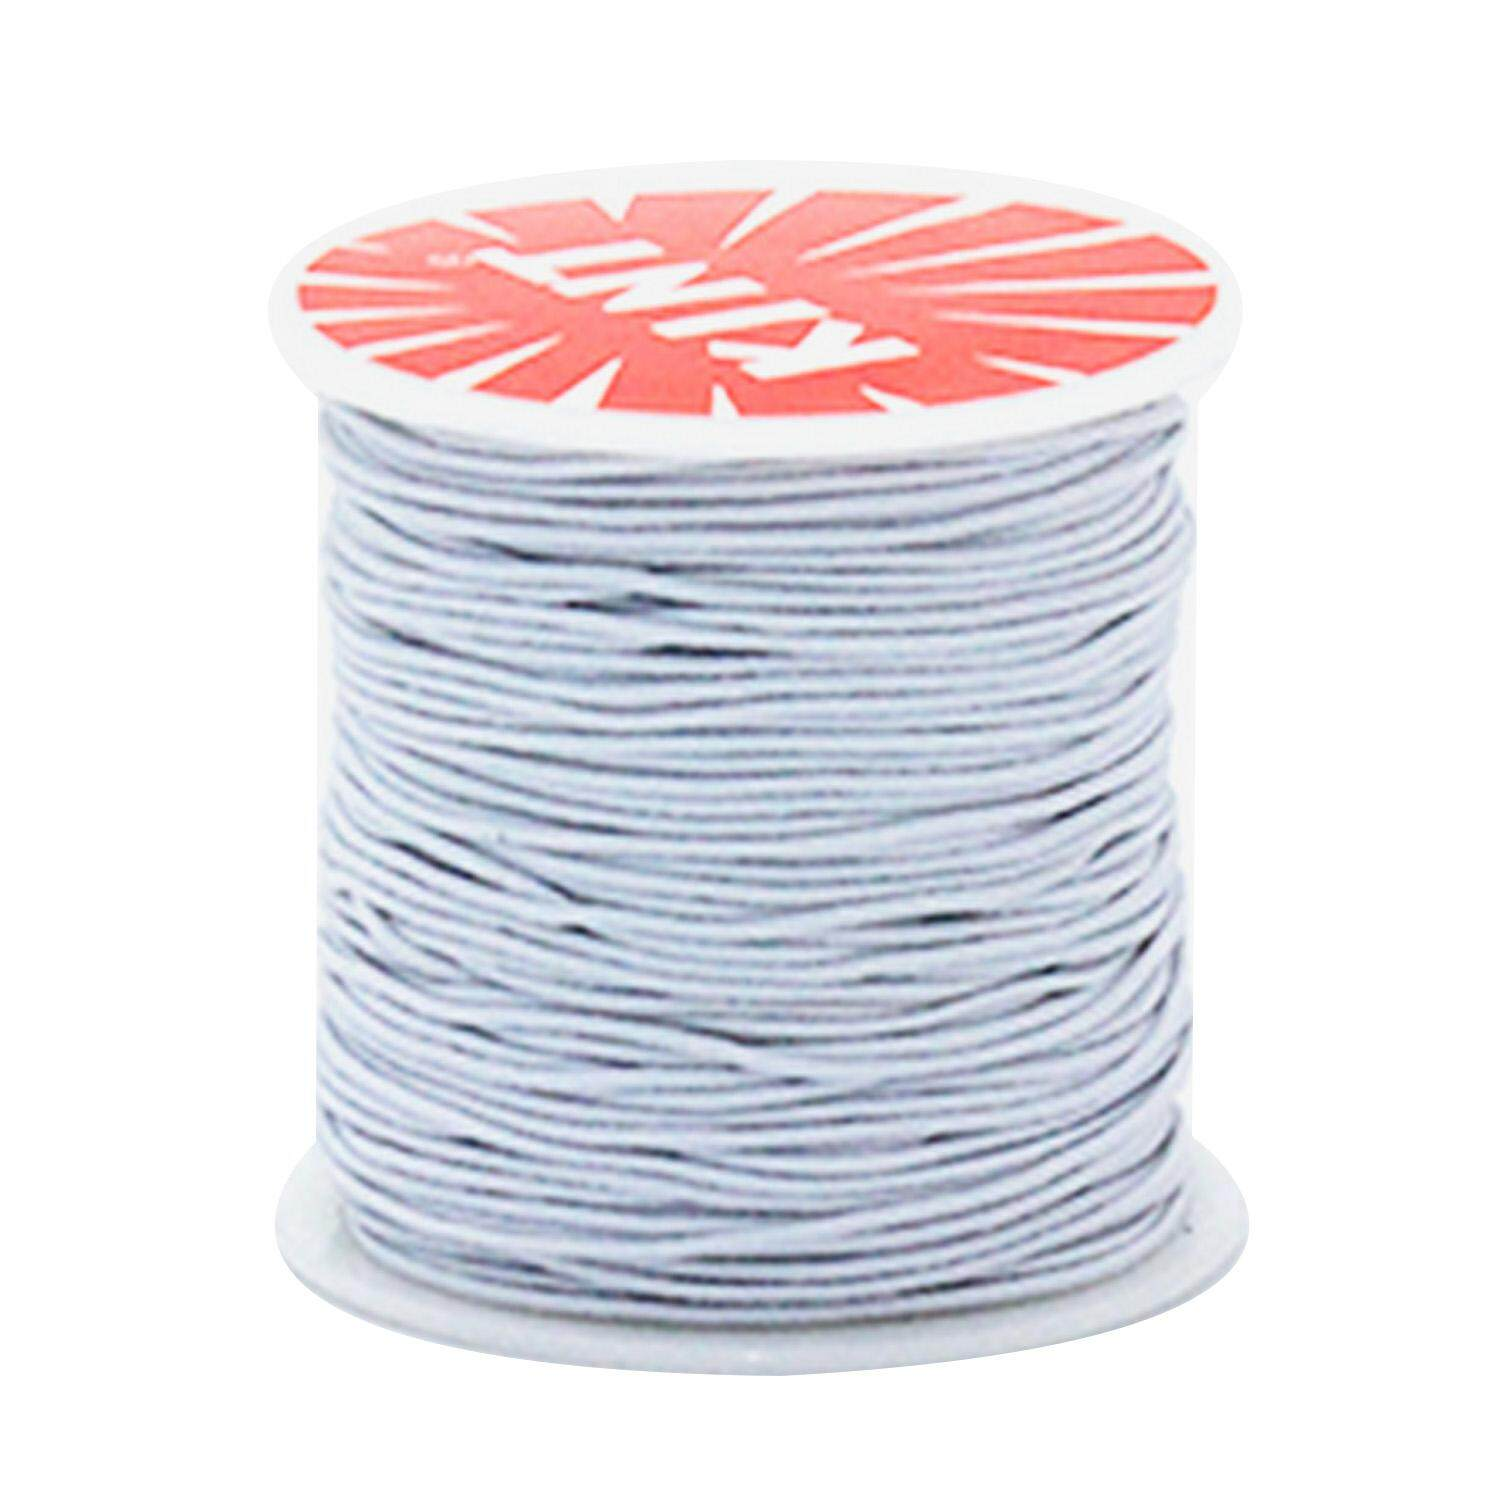 1 Roll 0 8mm Thickness Elastic Stretch Beading Thread String Rope Cord for  DIY Craft Jewelry Bracelet Necklace Making 100m